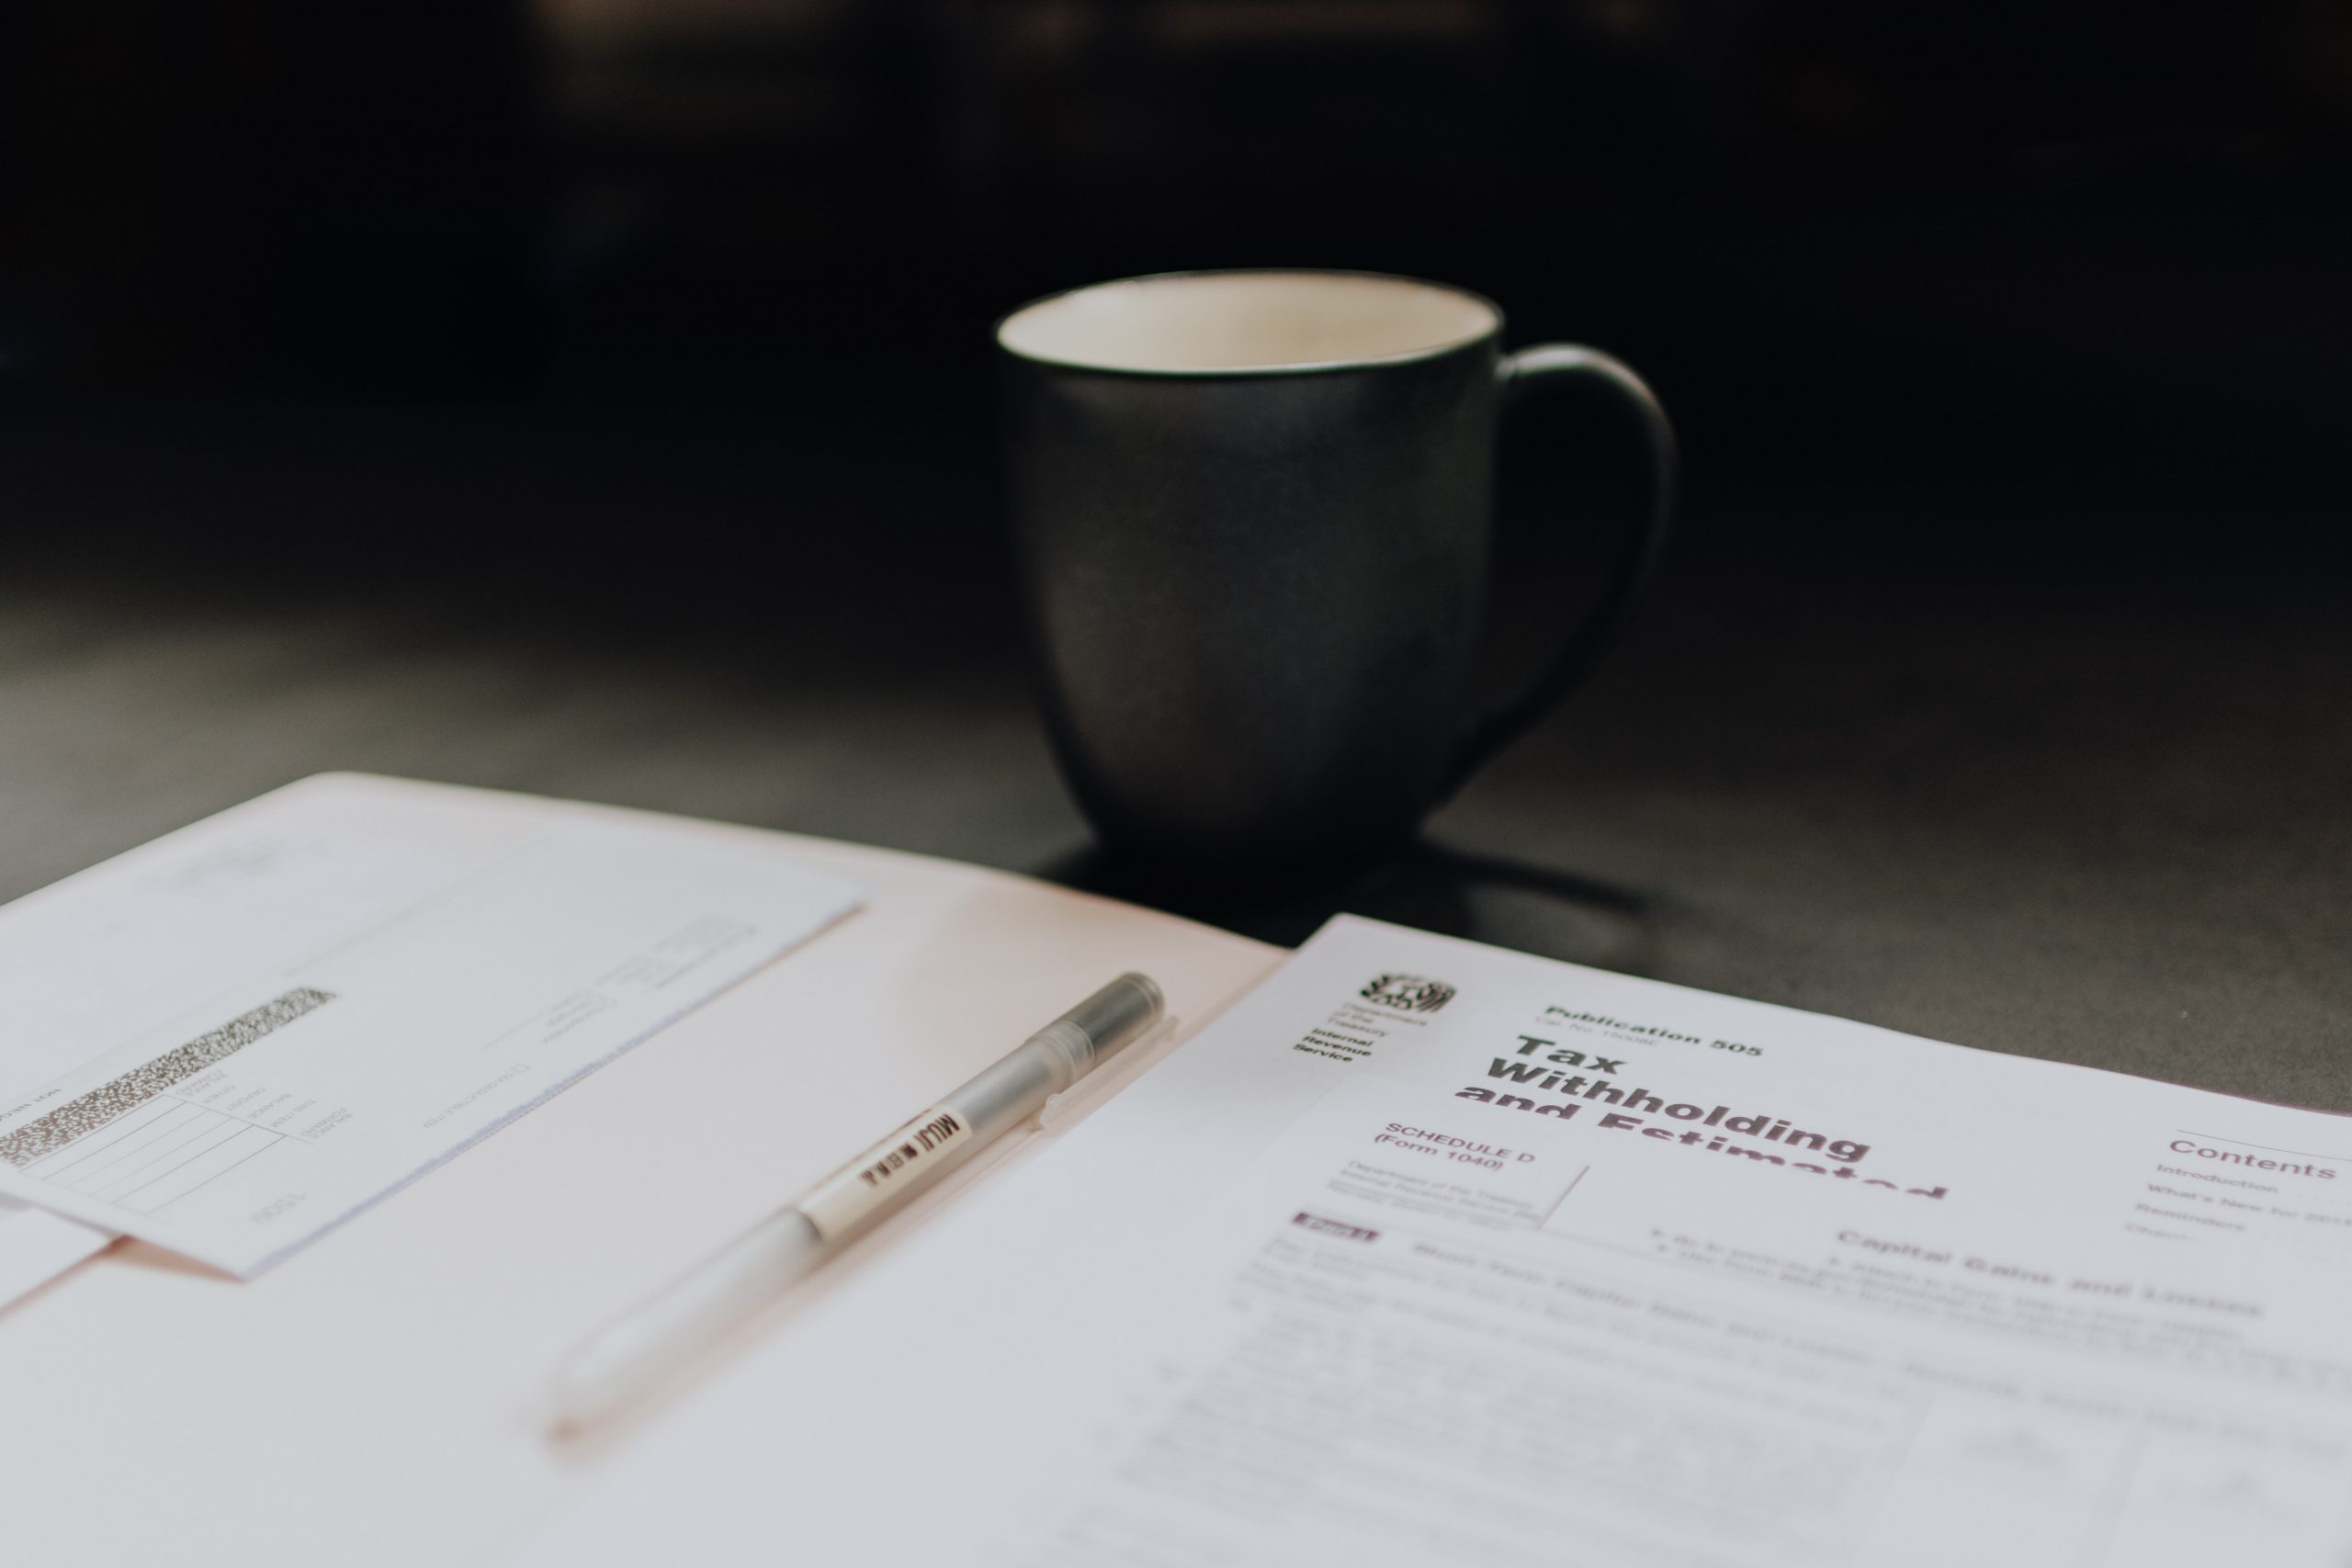 bookkeeping services aspley documents and mug on surface